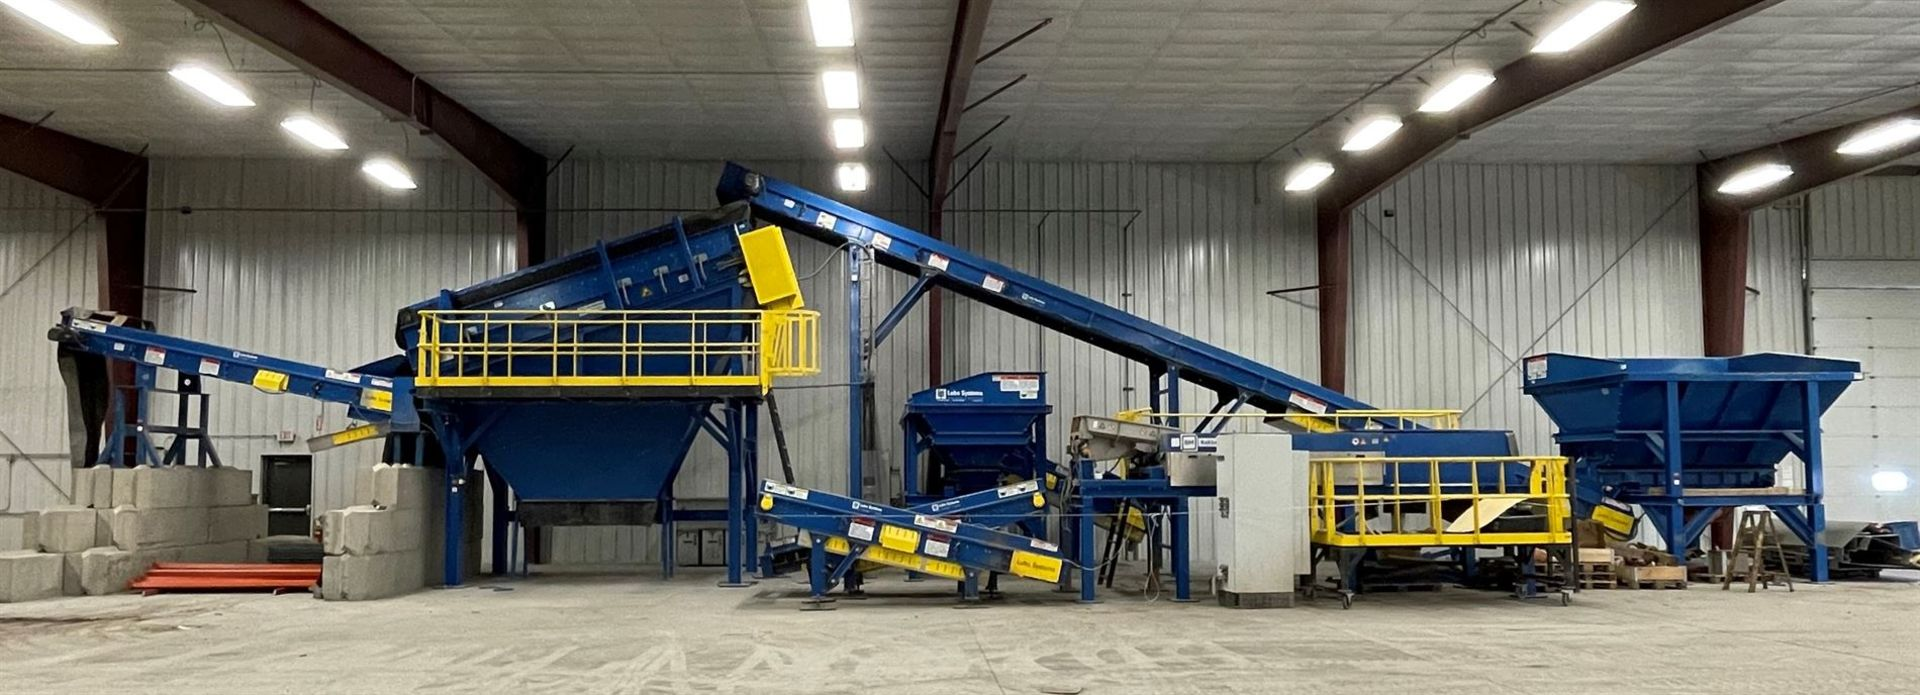 BULK LOT: 2015 VDL SYSTEMS Metal Recovery Shaker Separation Line as a Complete System, Comprising - Image 3 of 10